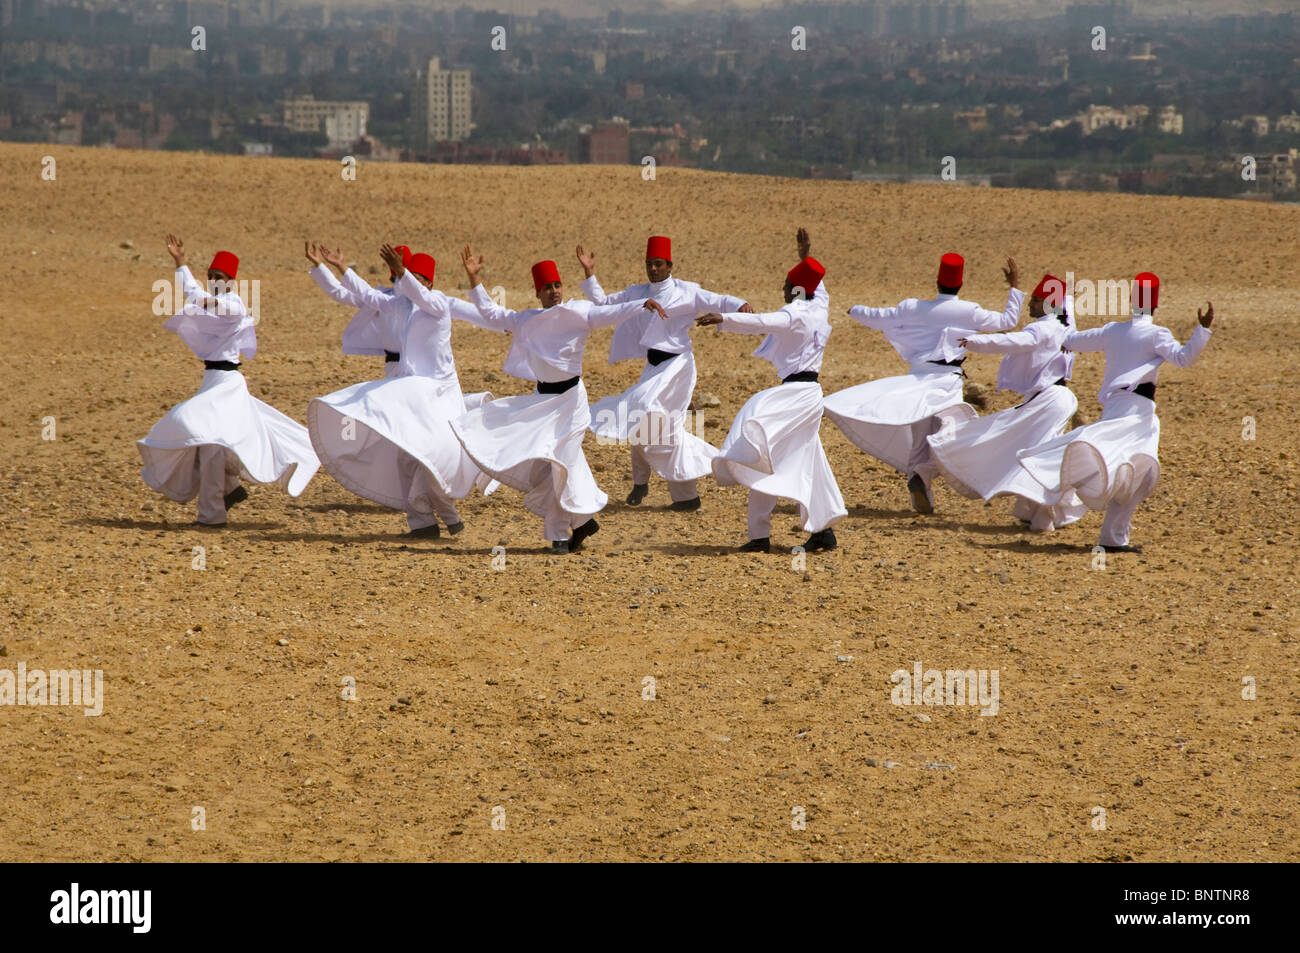 whirling dervish Sufi dancers in motion on the Giza plateau in Cairo Egypt - Stock Image